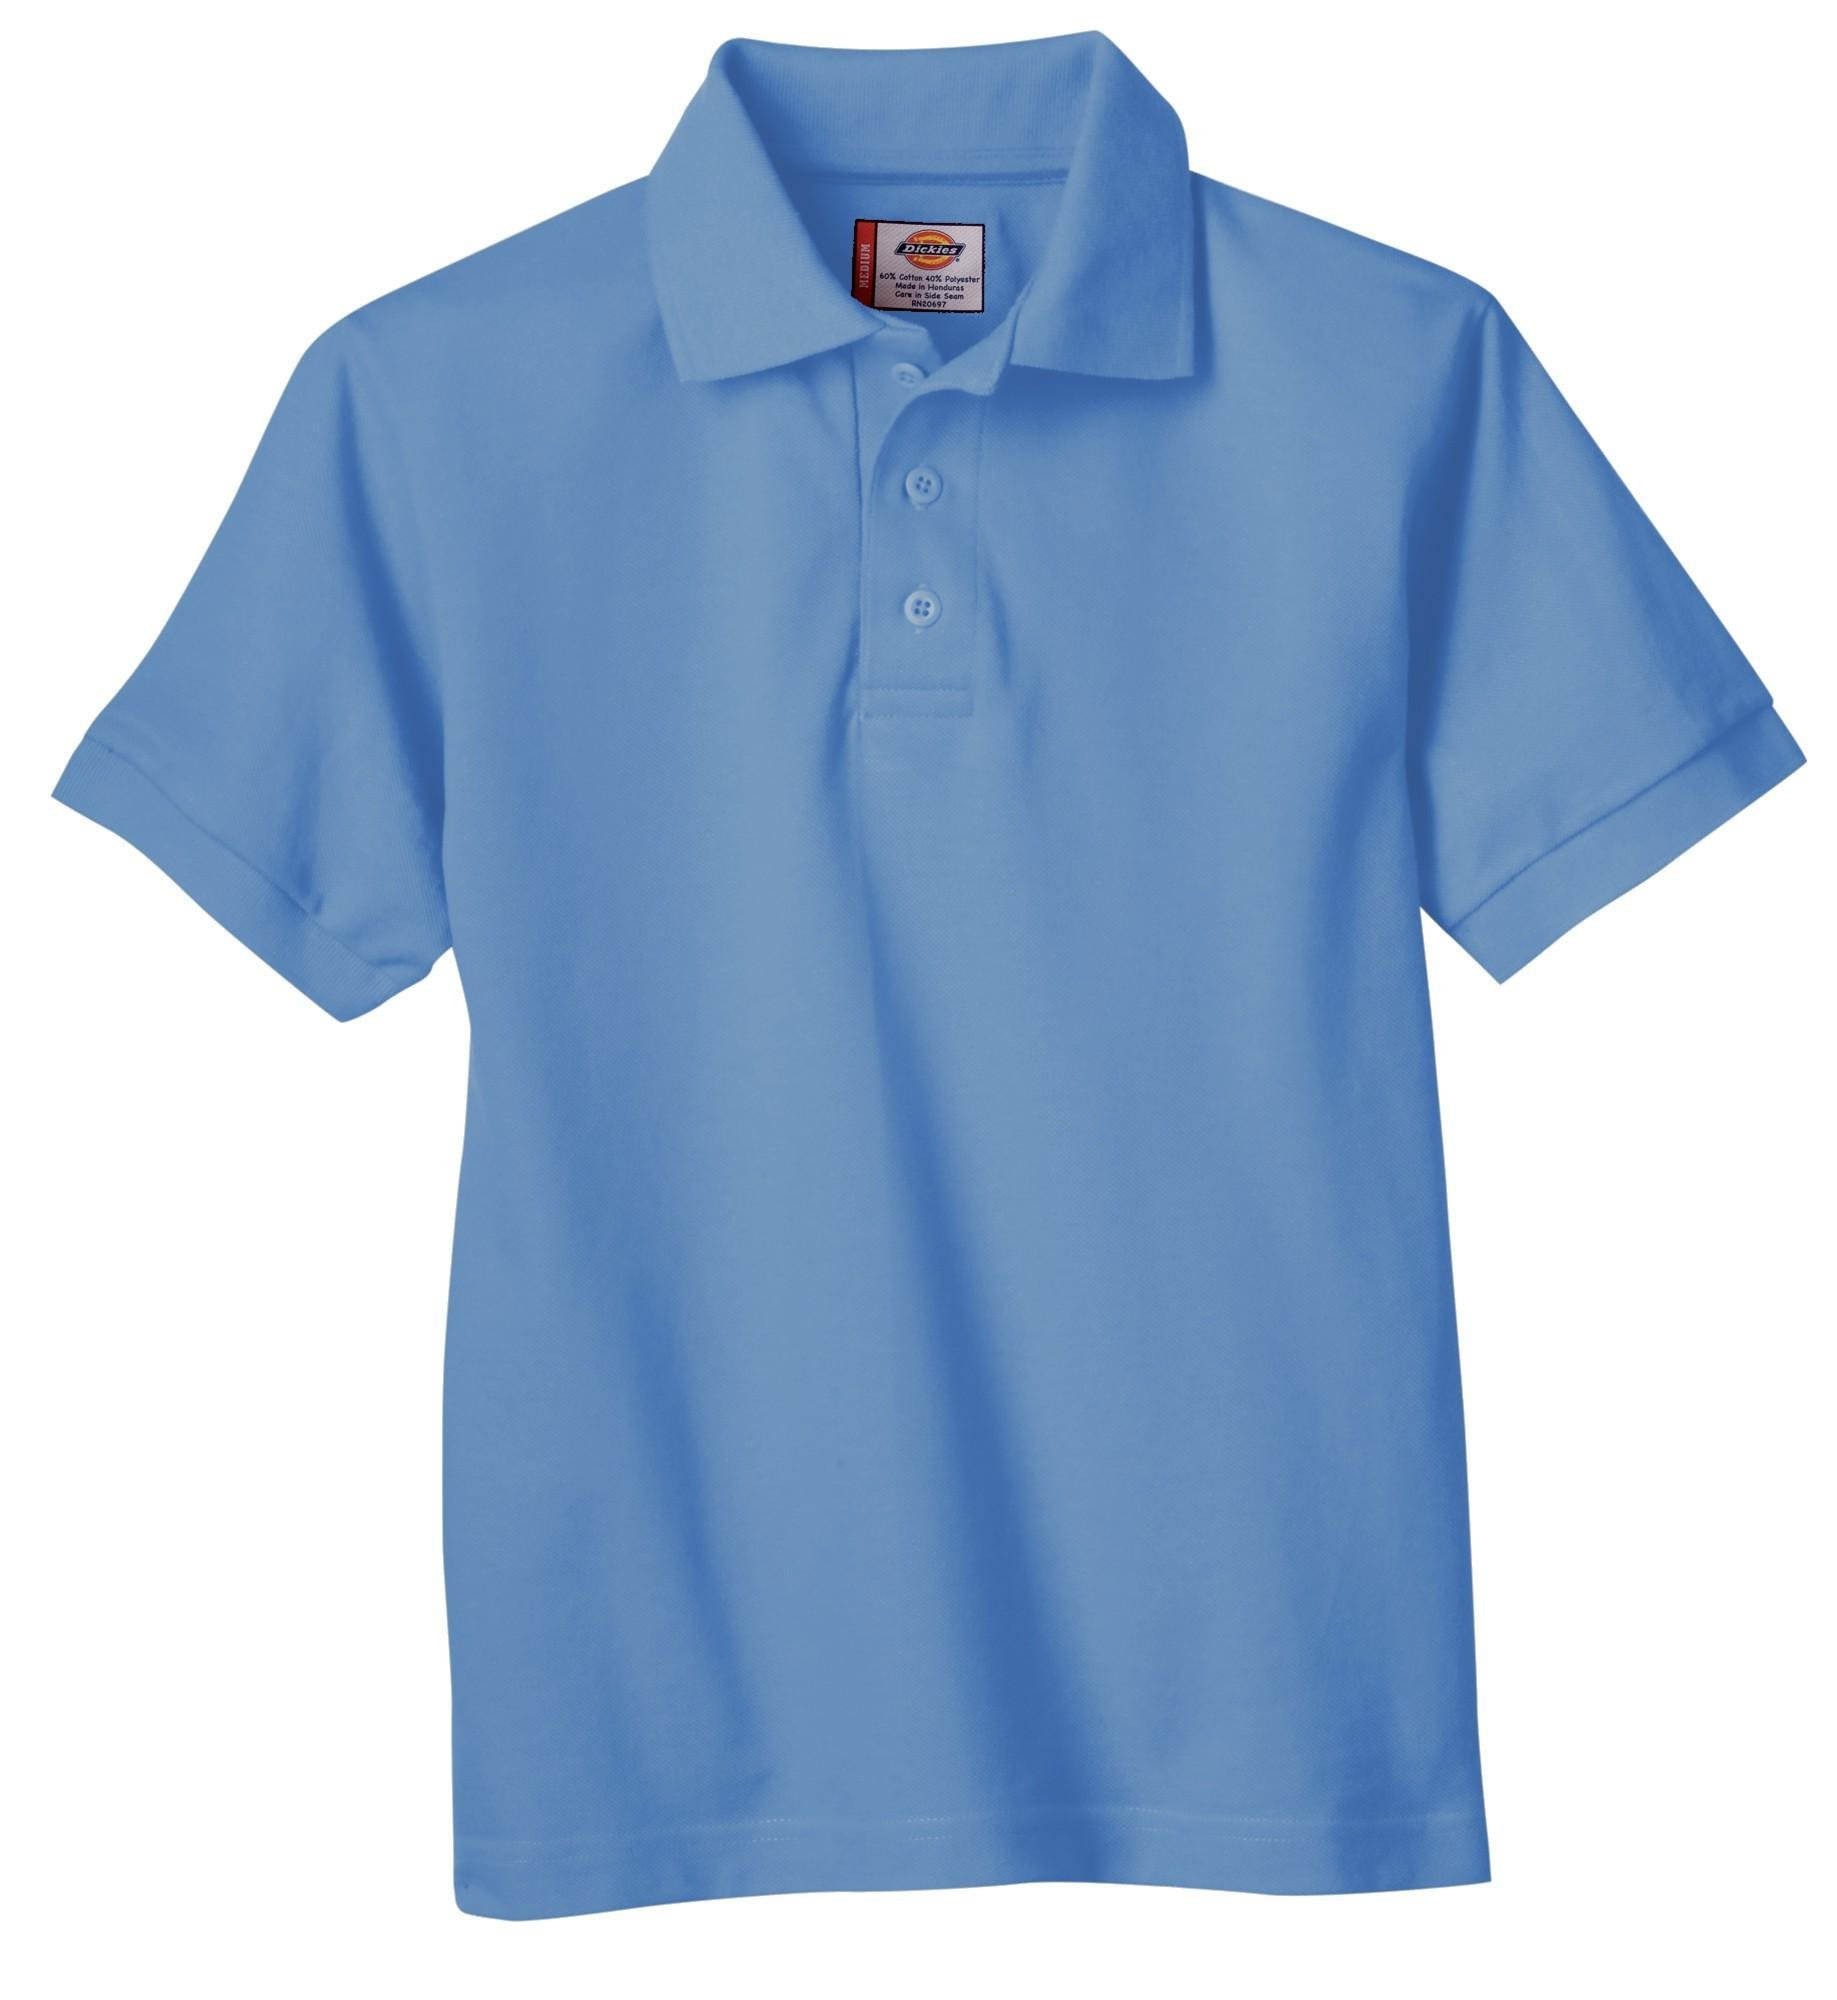 Dickies Big Boys' Short Sleeve Pique Polo Shirt, Light Blue, Large (14/16)